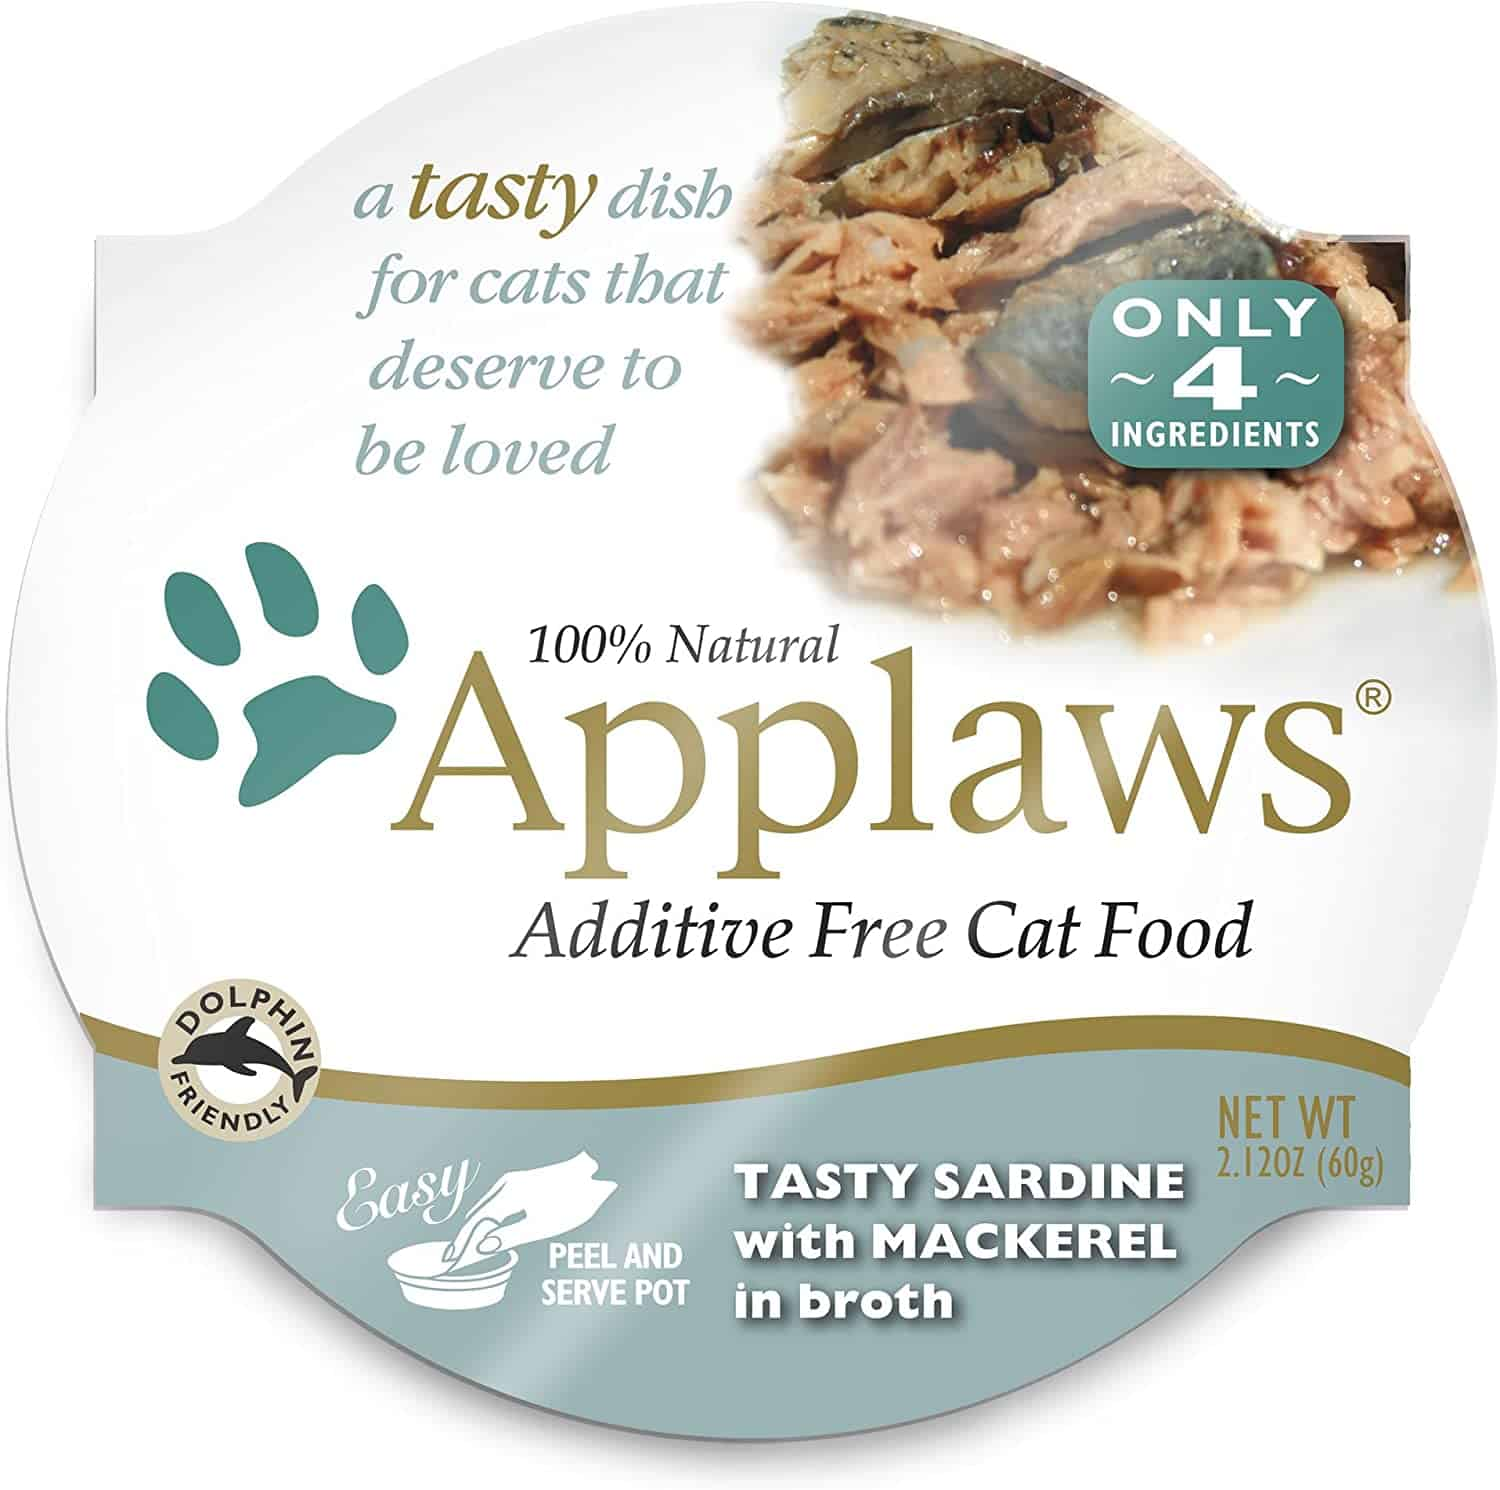 2021 Applaws Cat Food Reviews: Naturally Nutritious Cat Food 5